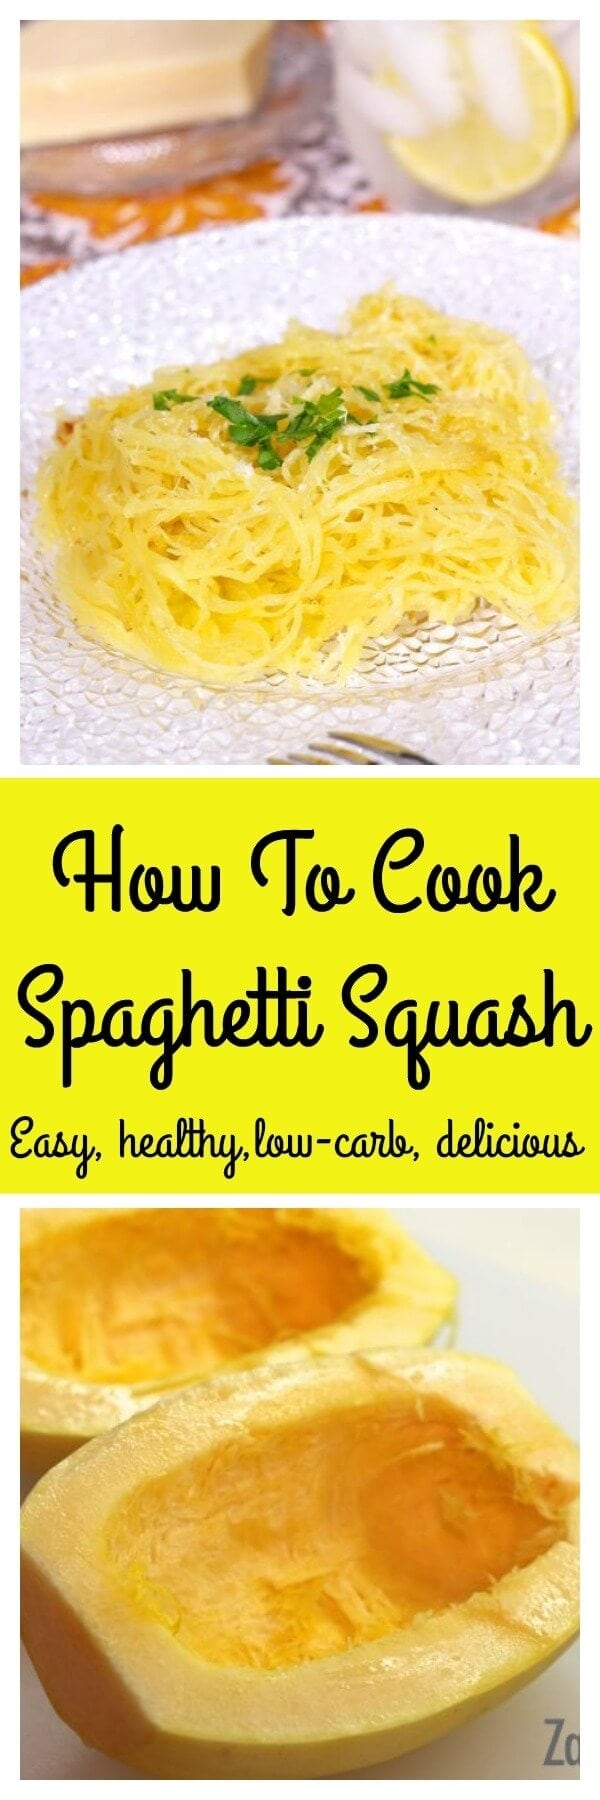 How To Cook Spaghetti Squash, an easy step-by-step recipe with photos and a video. Spaghetti Squash is a flavorful low carb alternative to pasta. | onedishkitchen.com